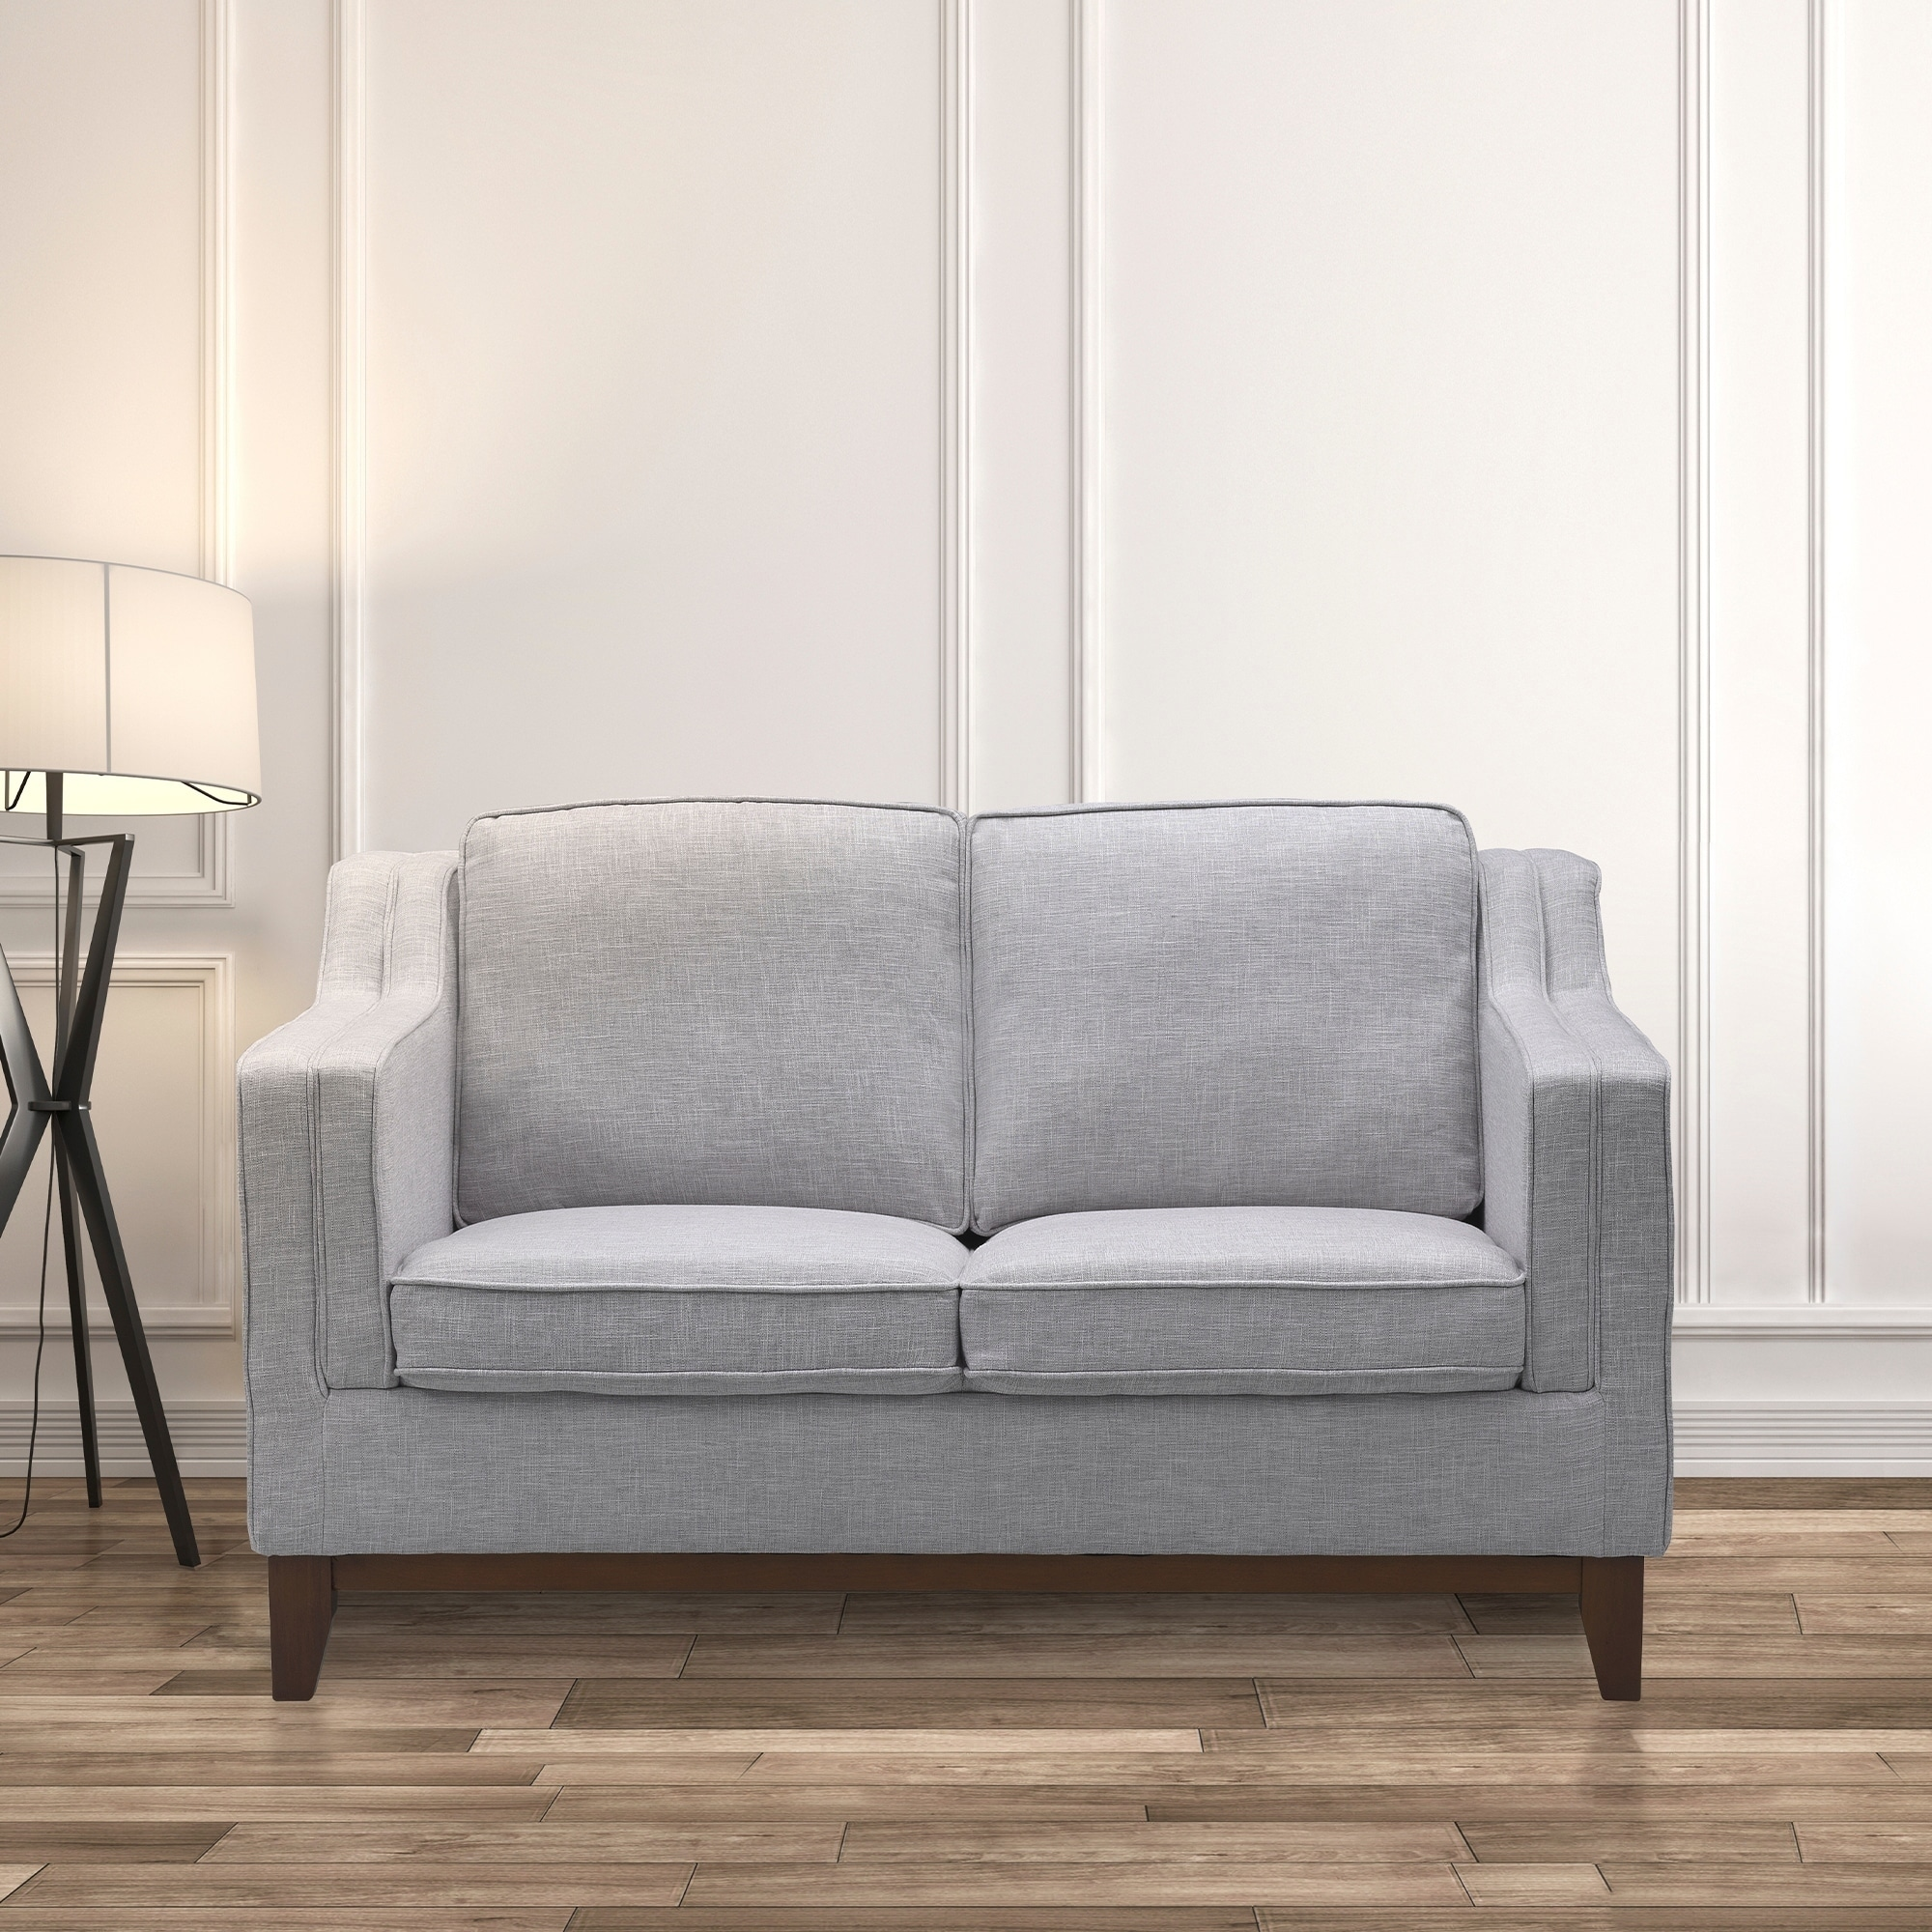 Prime Kramer Modern Loveseat In Walnut Finish With Light Gray Fabric N A Bralicious Painted Fabric Chair Ideas Braliciousco